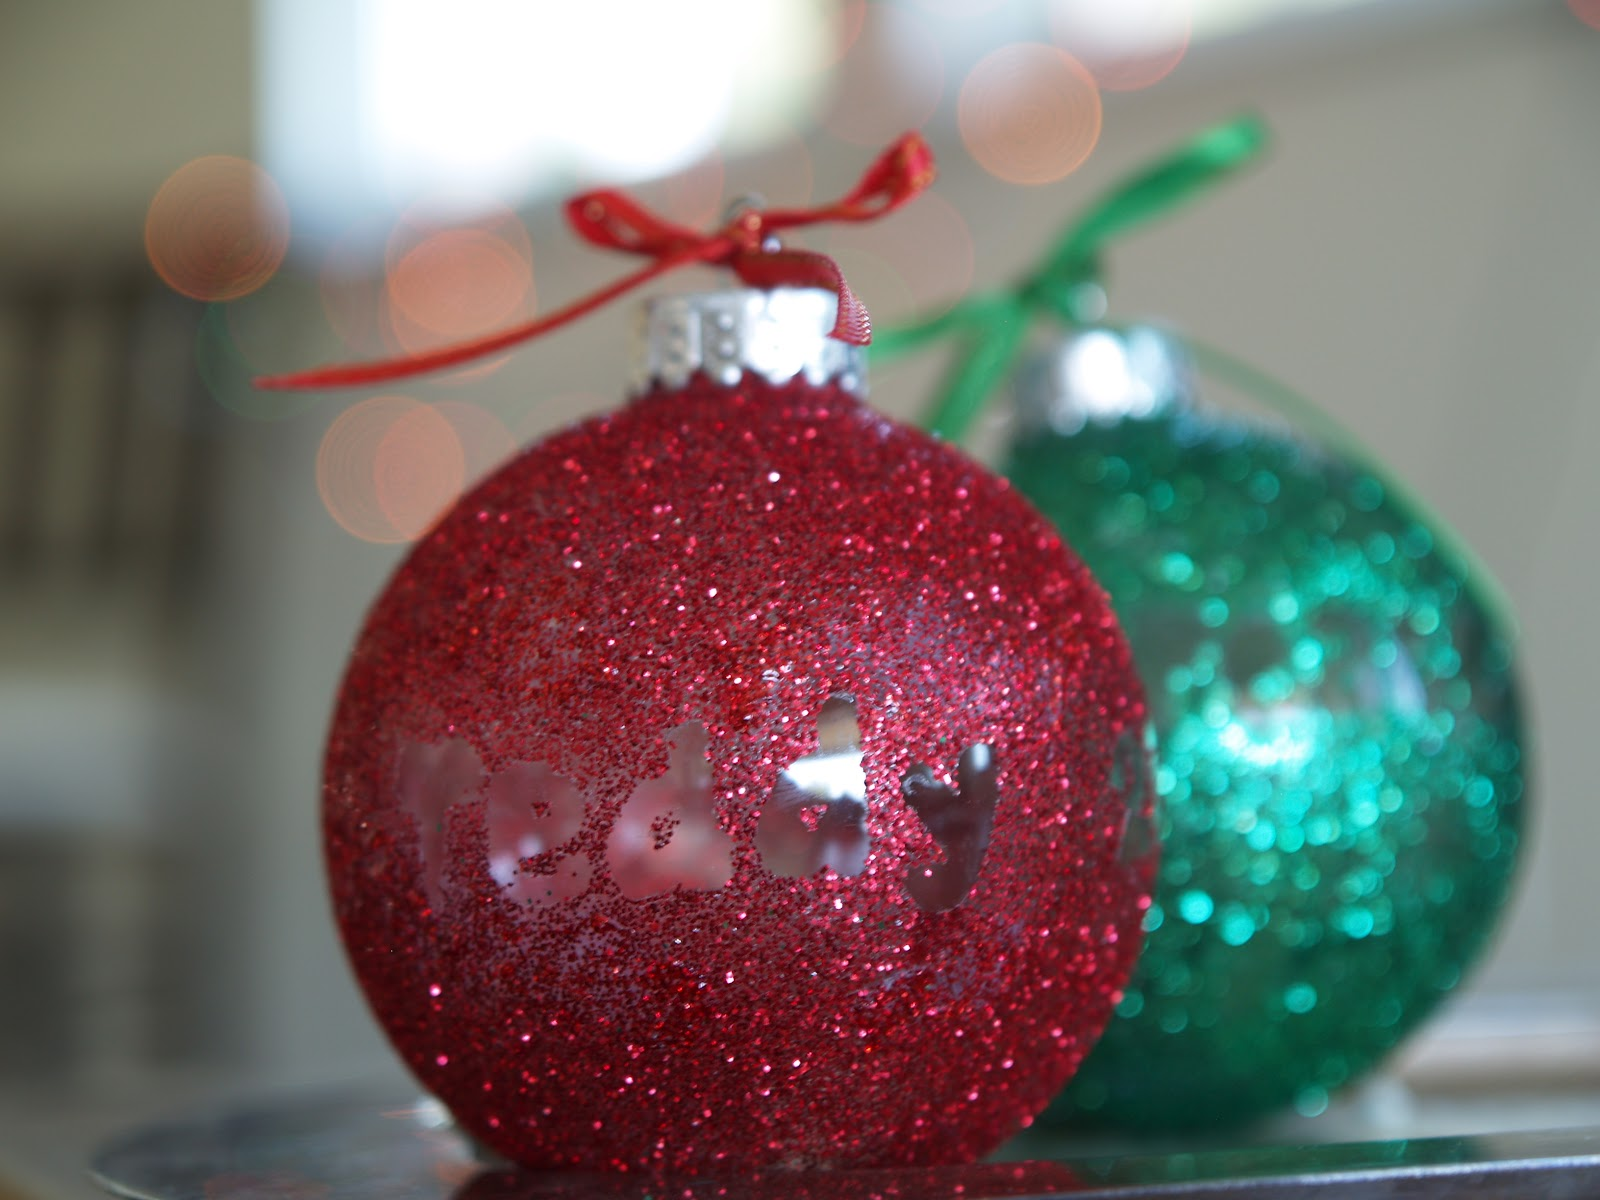 Decorating Christmas Balls With Glitter : Diy make a personalized glitter ornament